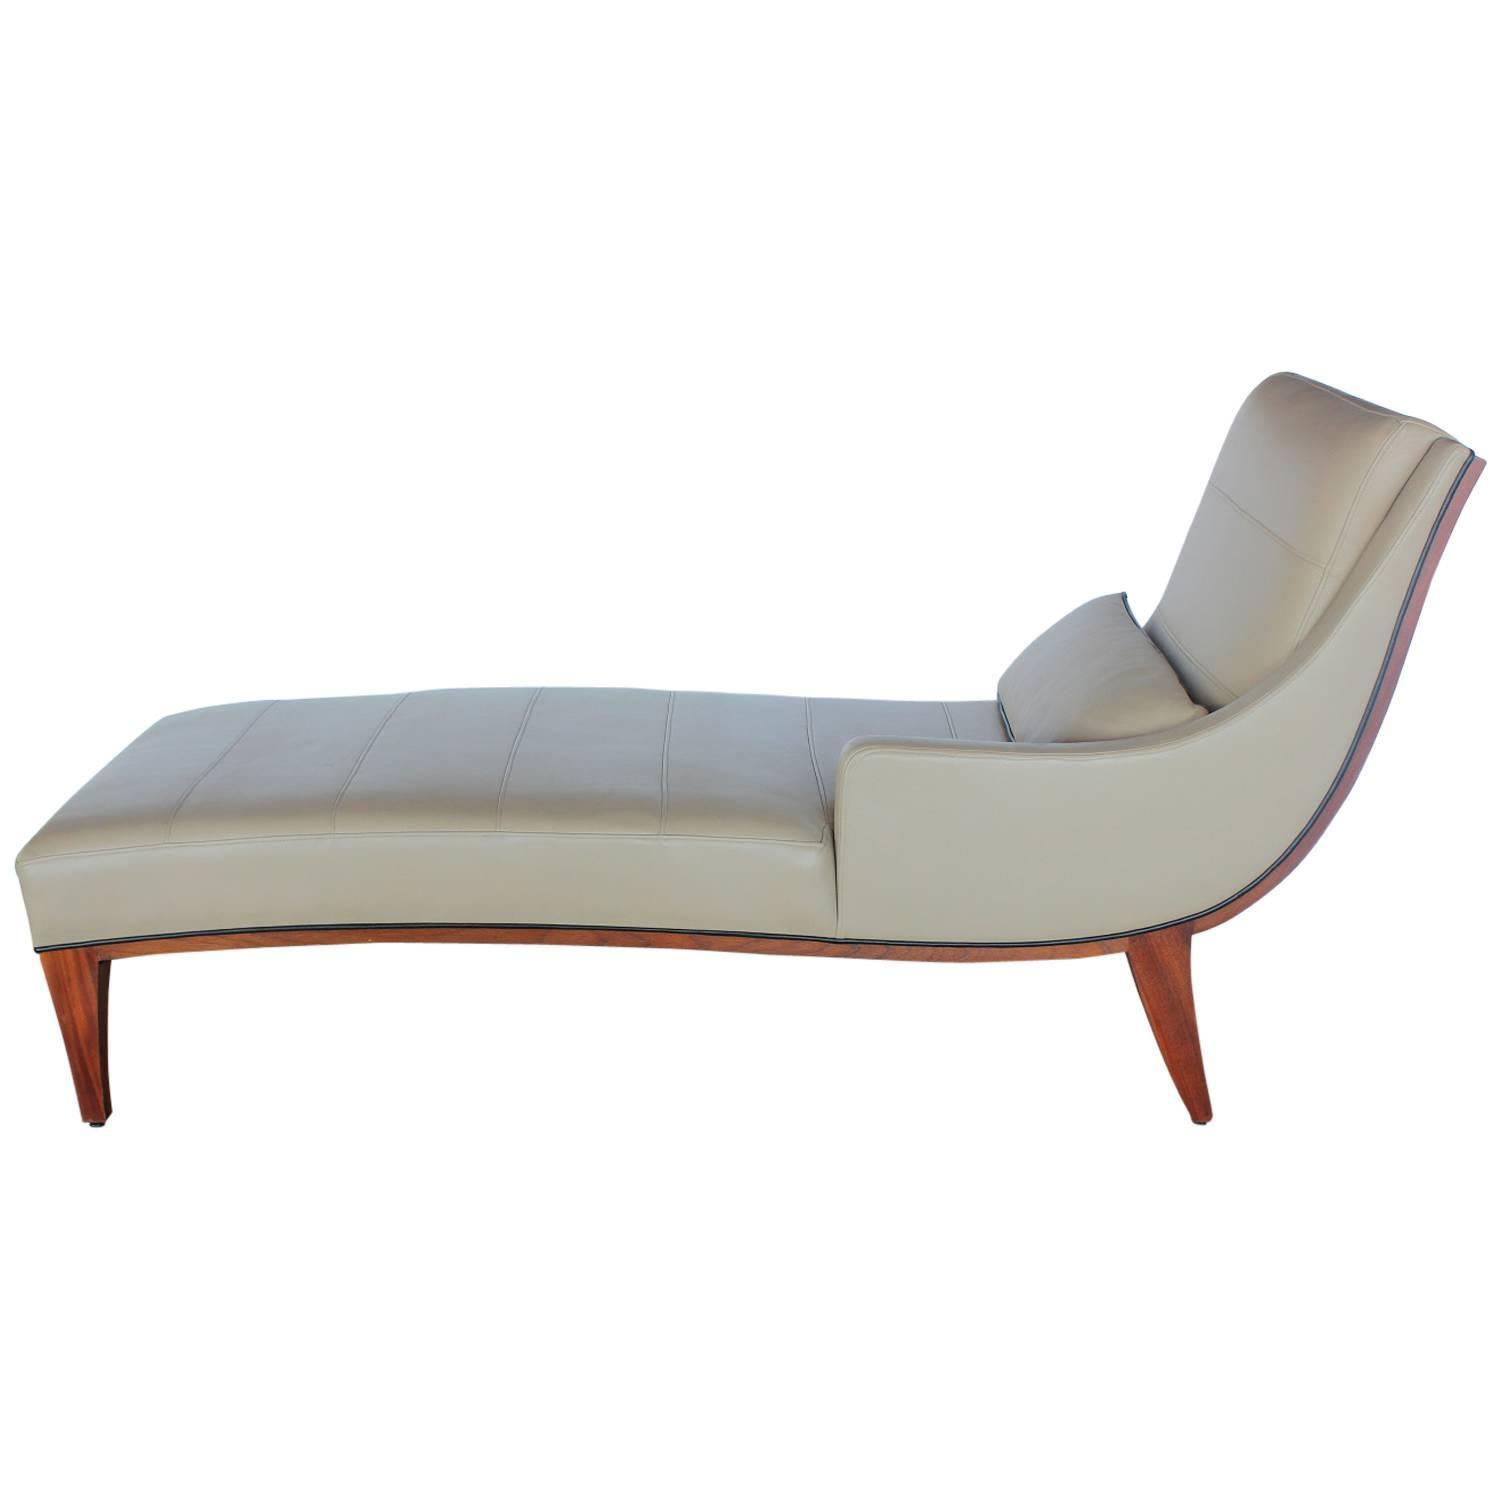 Modern leather chaise lounge by widdicomb for sale at 1stdibs for Chaise and lounge